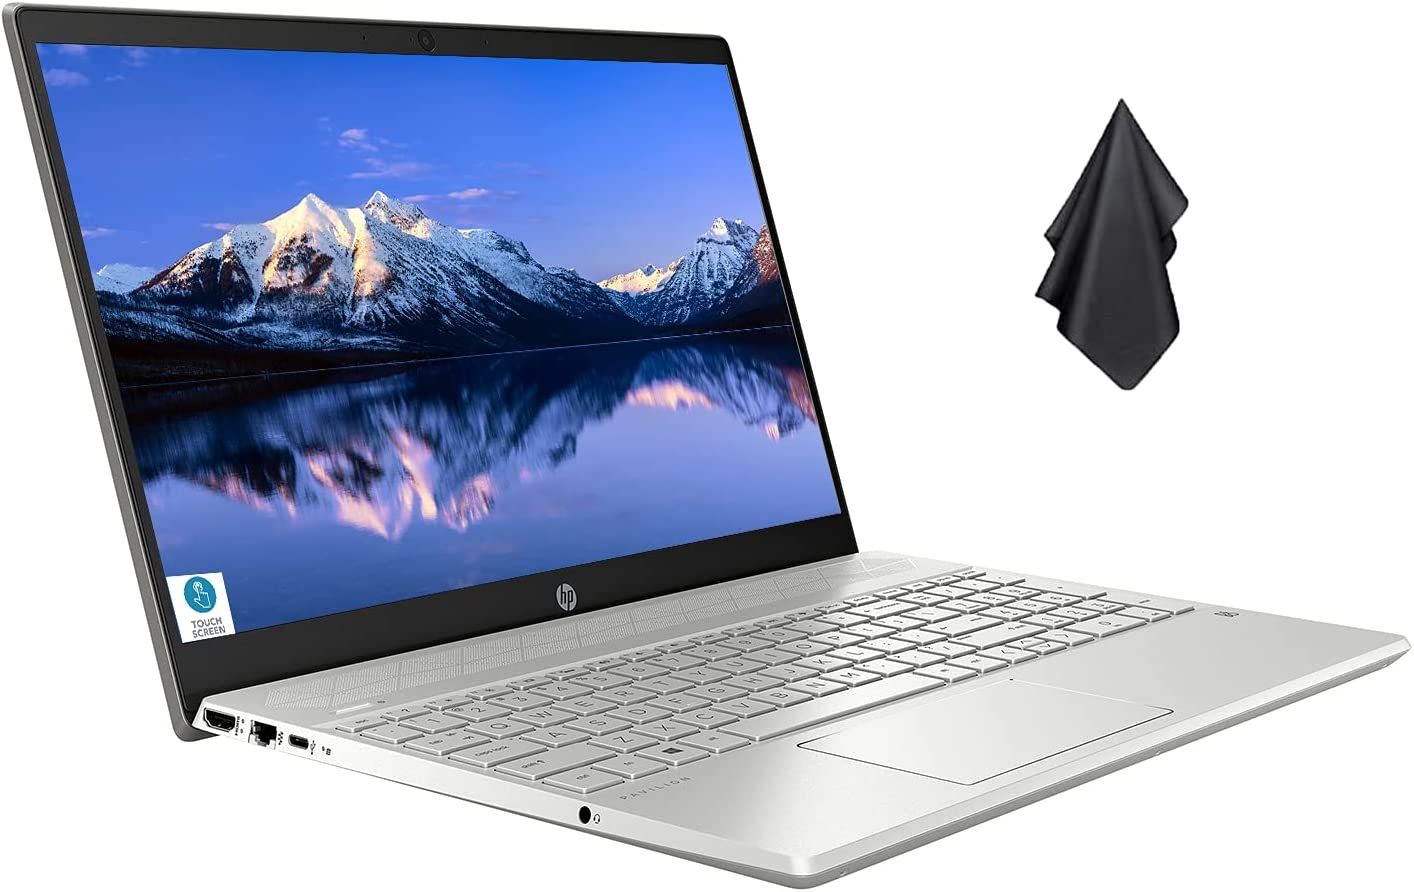 Newest HP Pavilion 15 inch FHD Touchscreen Laptop for Business or Student, Intel Core i5-1035G1 Processor(Up to 3.6GHz), 12GB DDR4 RAM, 512GB PCIe SSD, WiFi, Bluetooth, HDMI, Windows 10